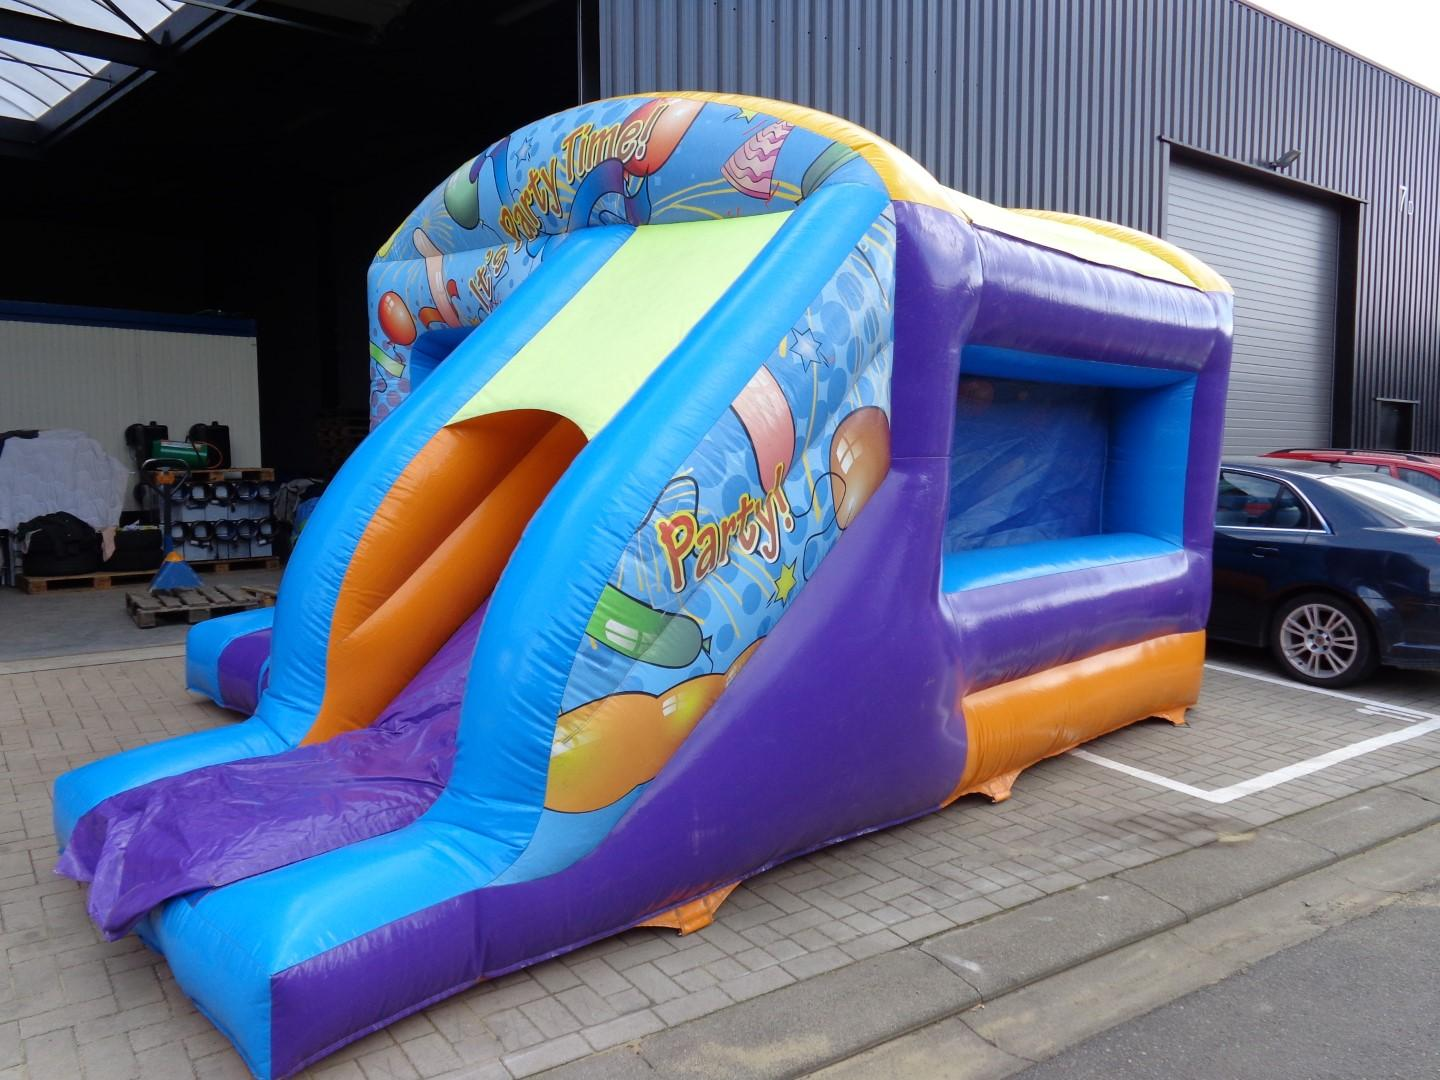 Springkasteel: Jump & slide party